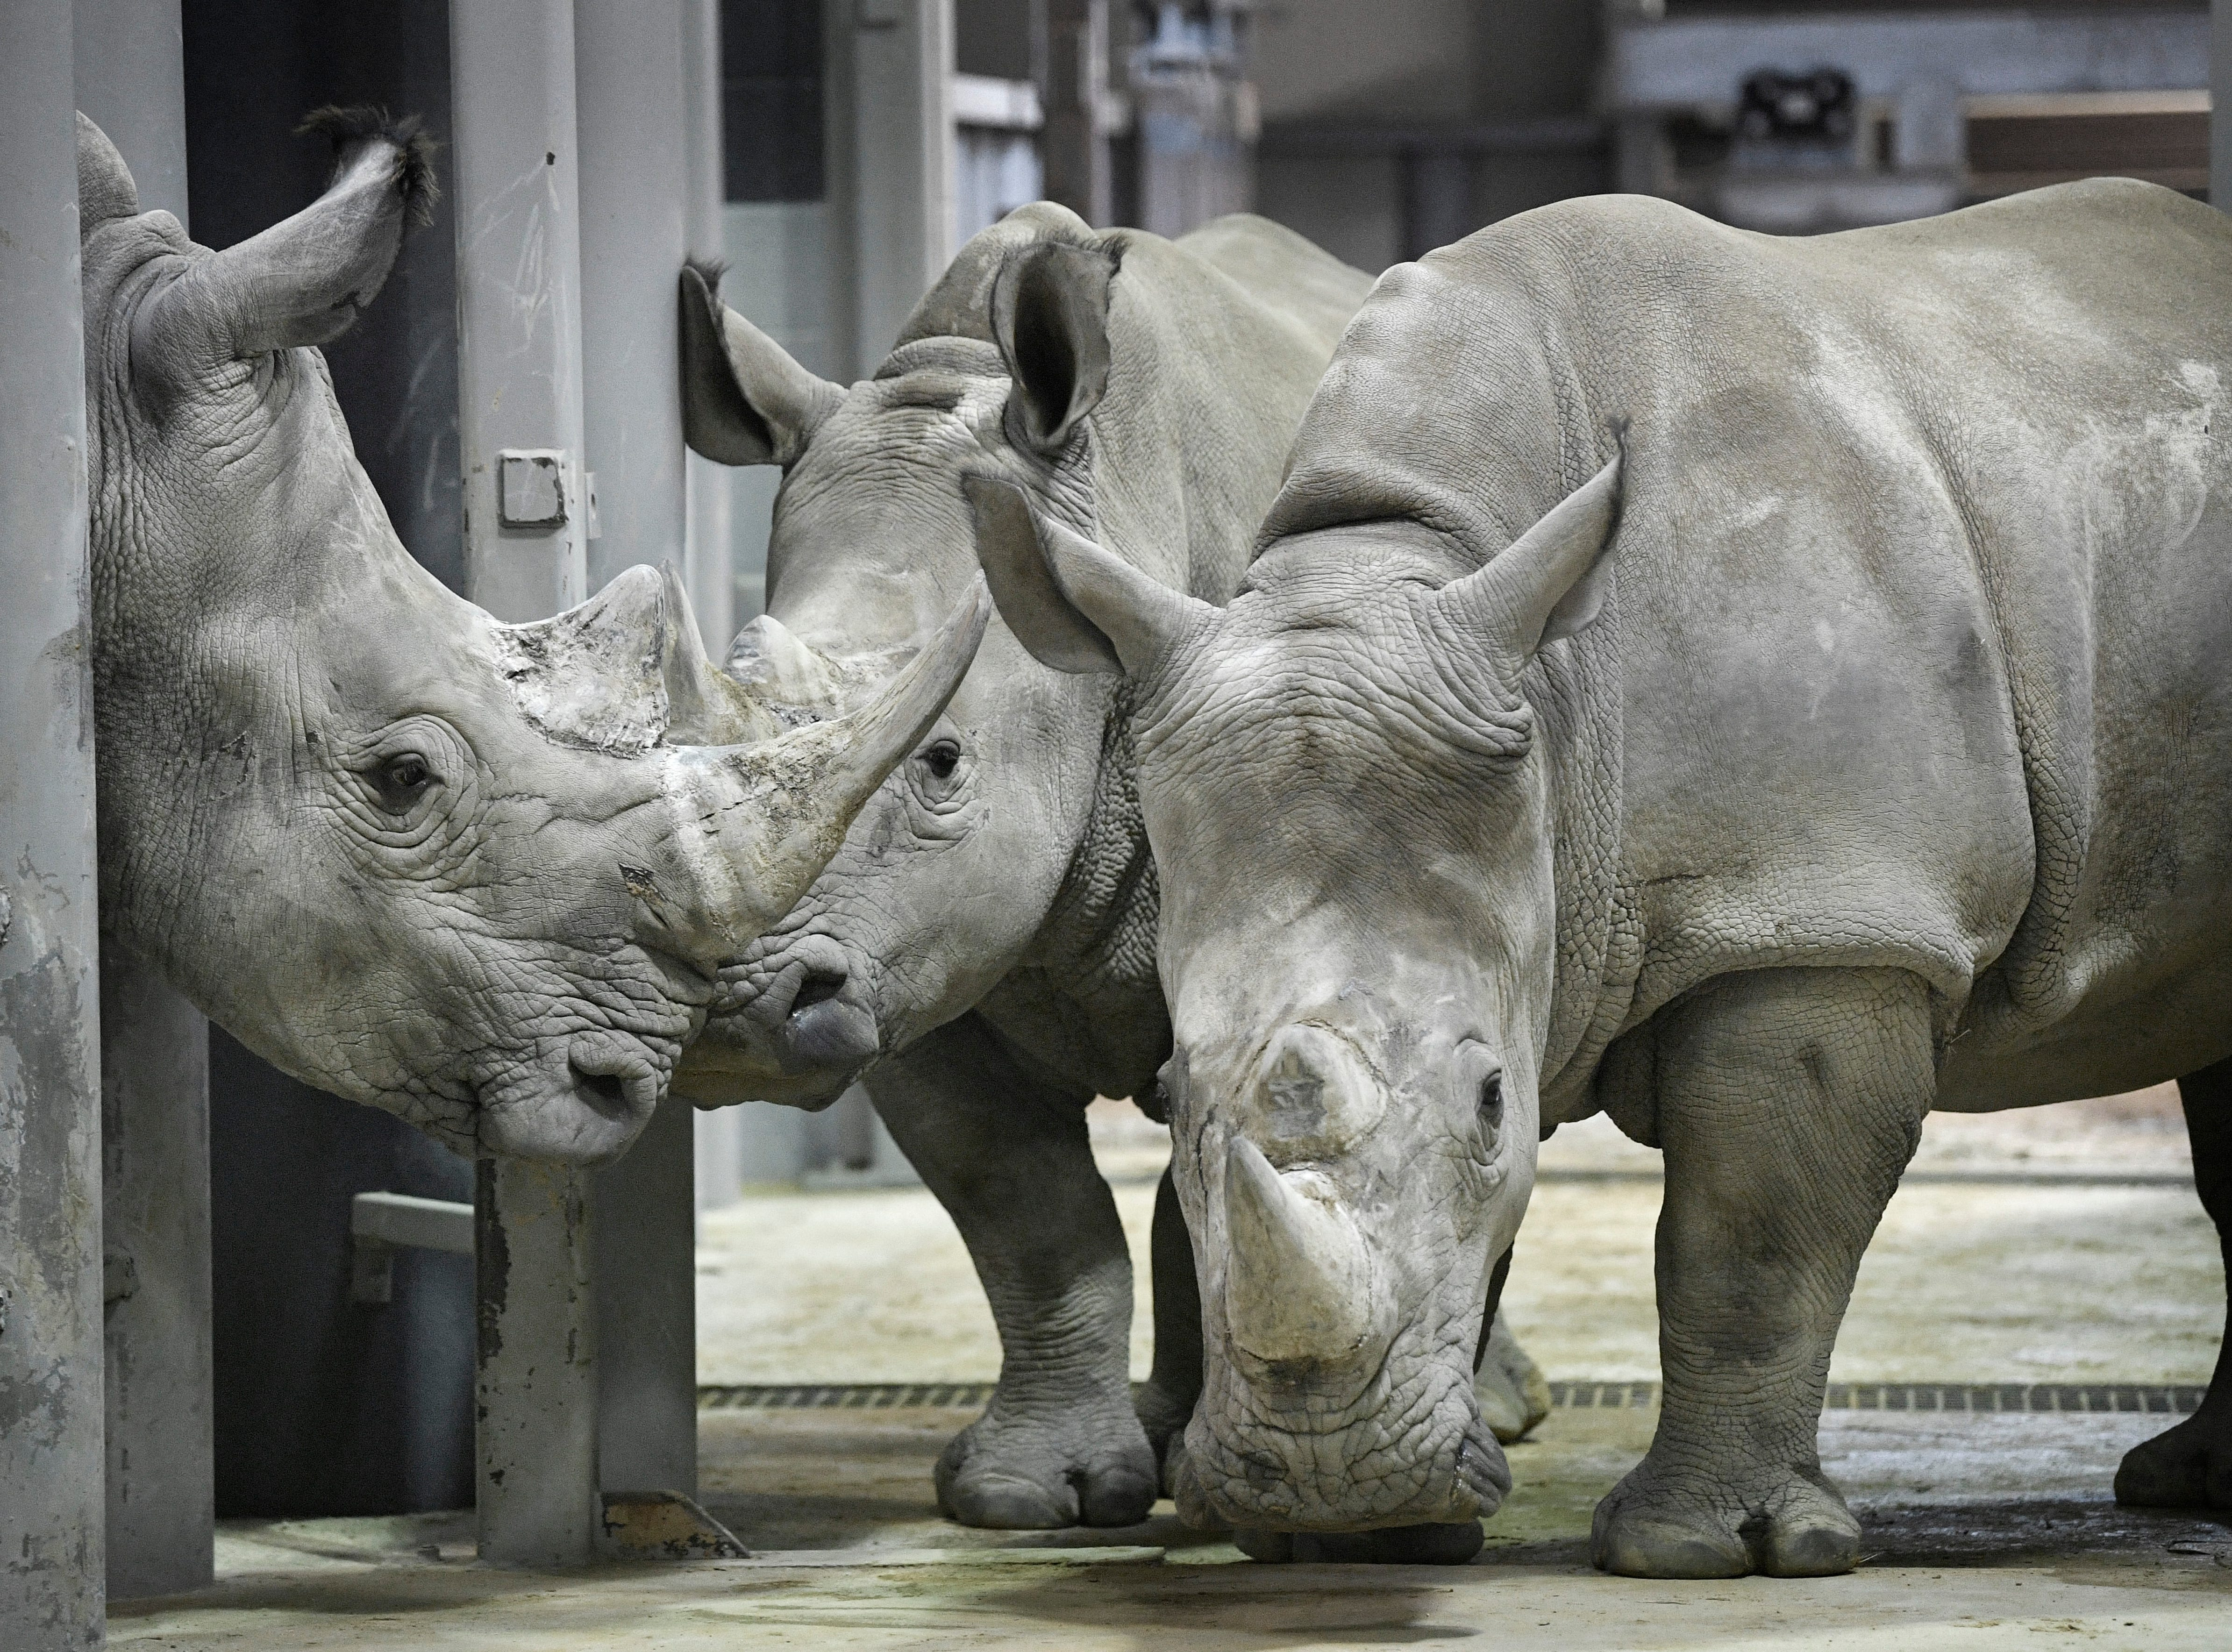 A male White Rhino, left, that will be a mate for the four female rhinos has arrived at the Nashville Zoo and has recently been introduced to the females although in different enclosures. Thursday, Feb. 7, 2019, in Nashville, Tenn.